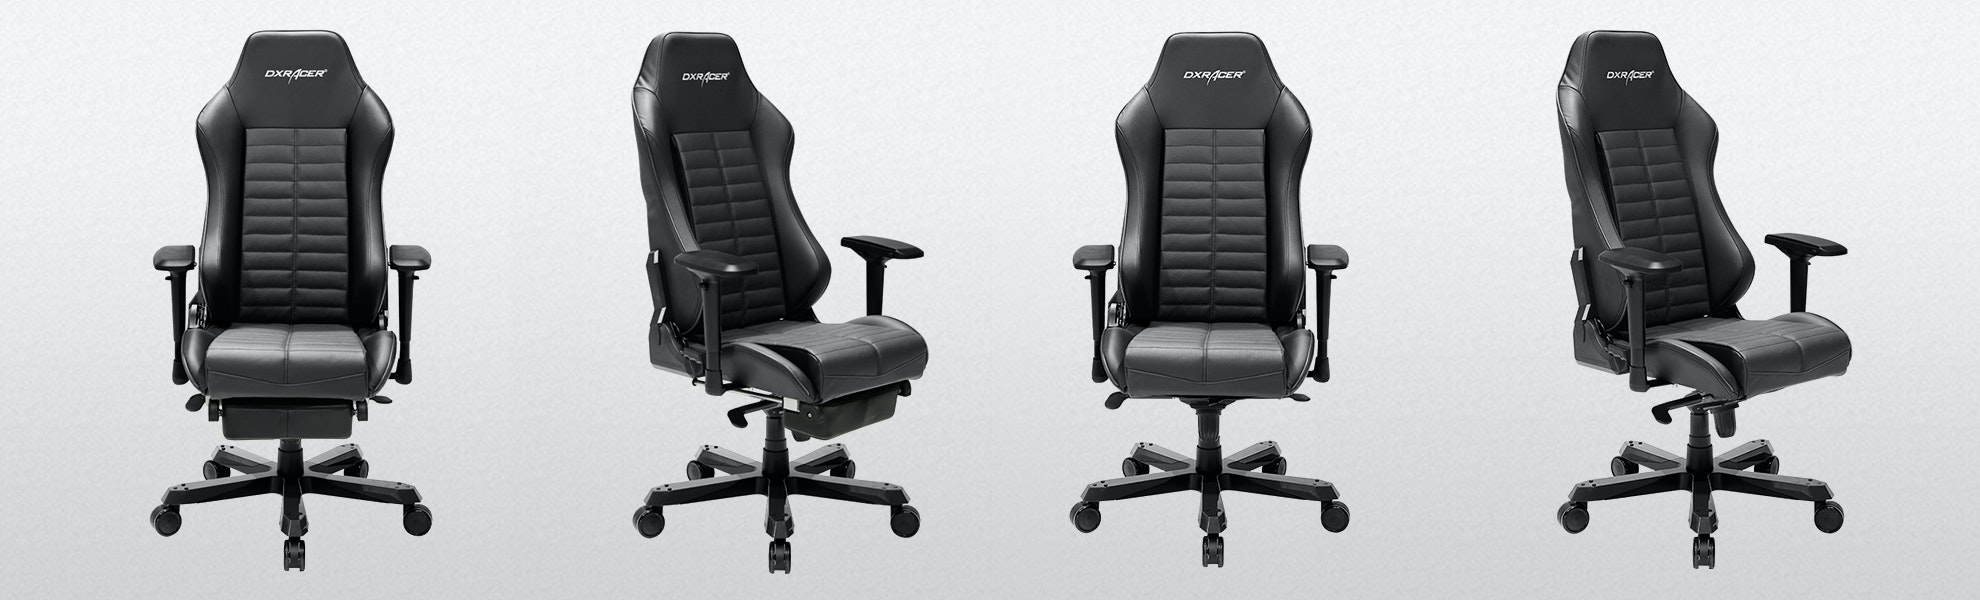 DXRacer Iron Series Chair IS133/IS133FT